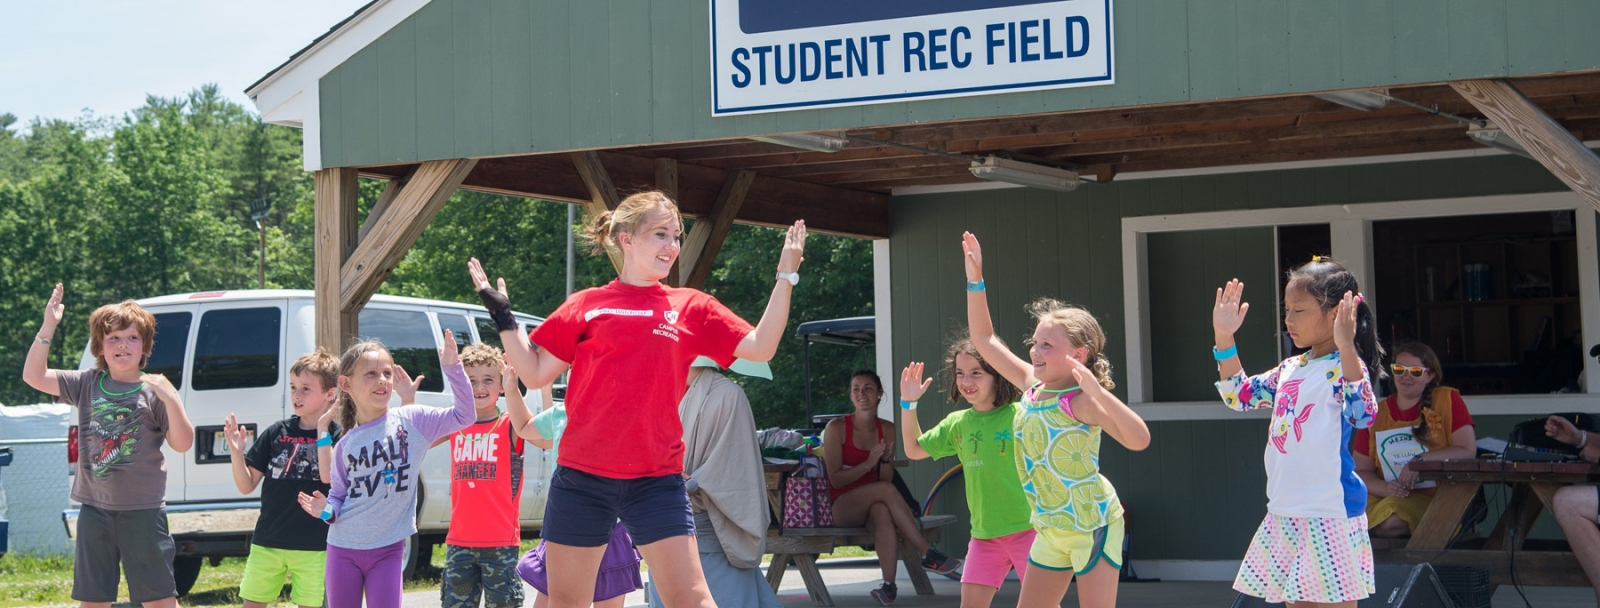 Camp Wildcat students dancing led by staff member